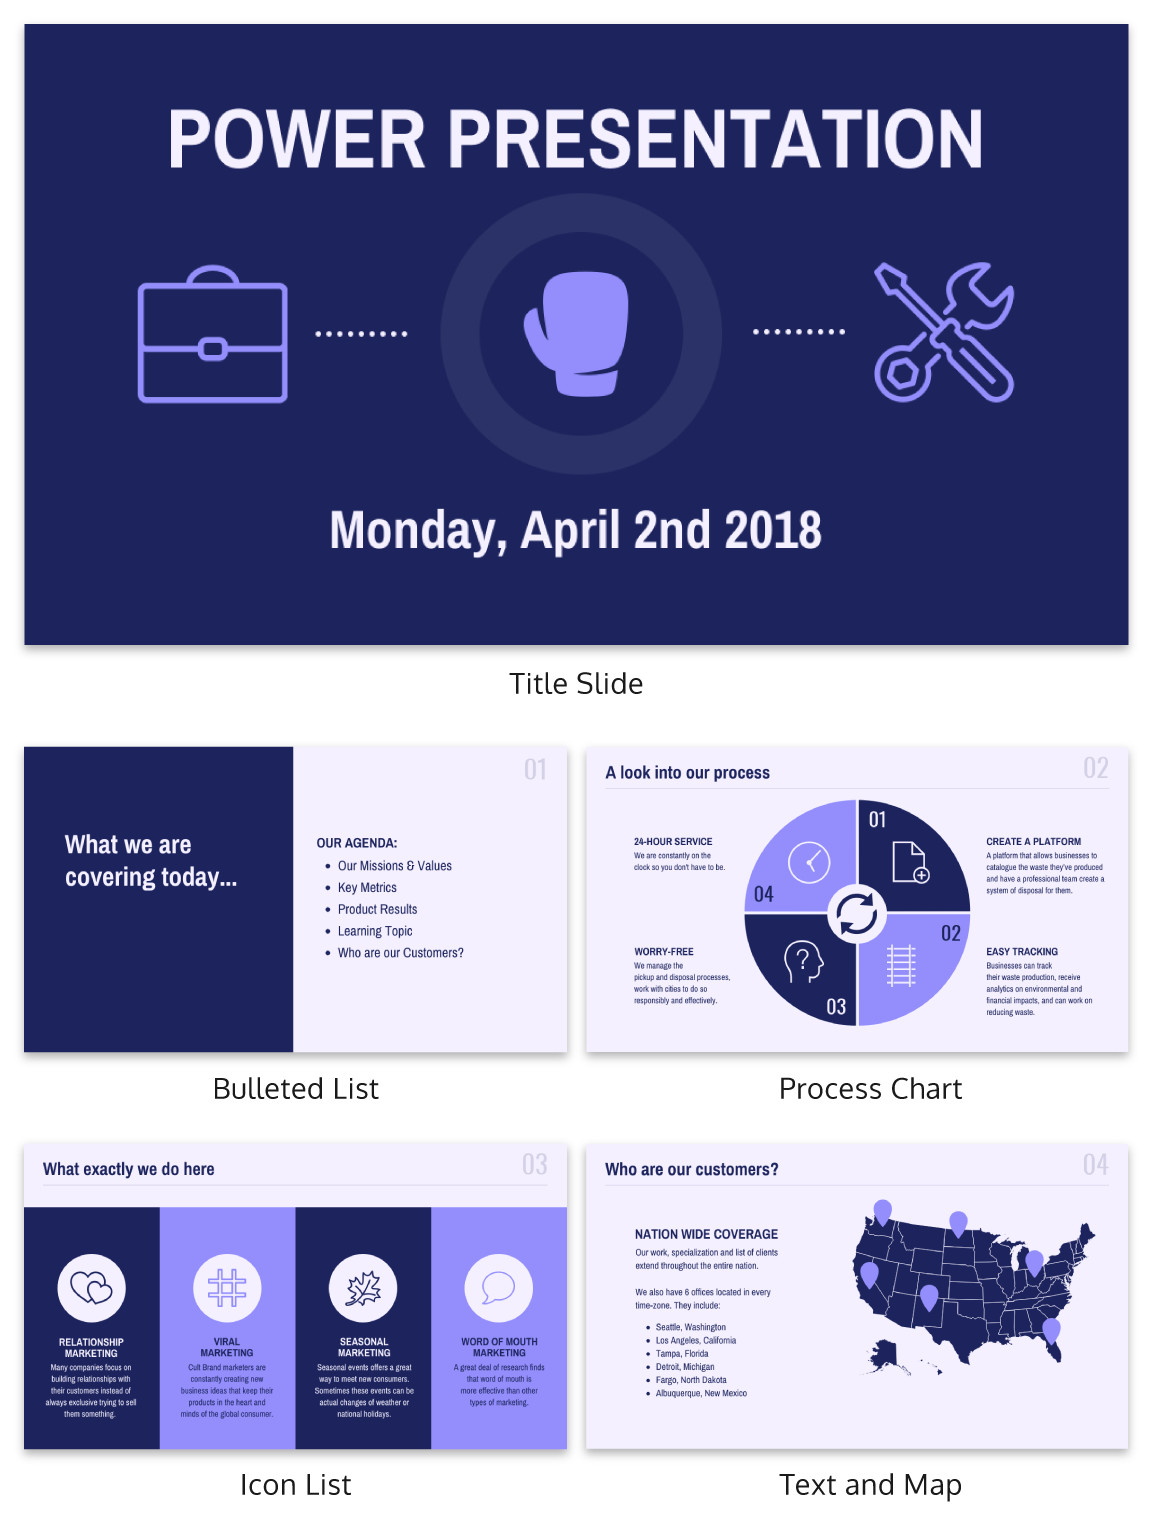 Powerpoint Presentation Outline Example 31 Stunning Presentation Templates and Design Tips